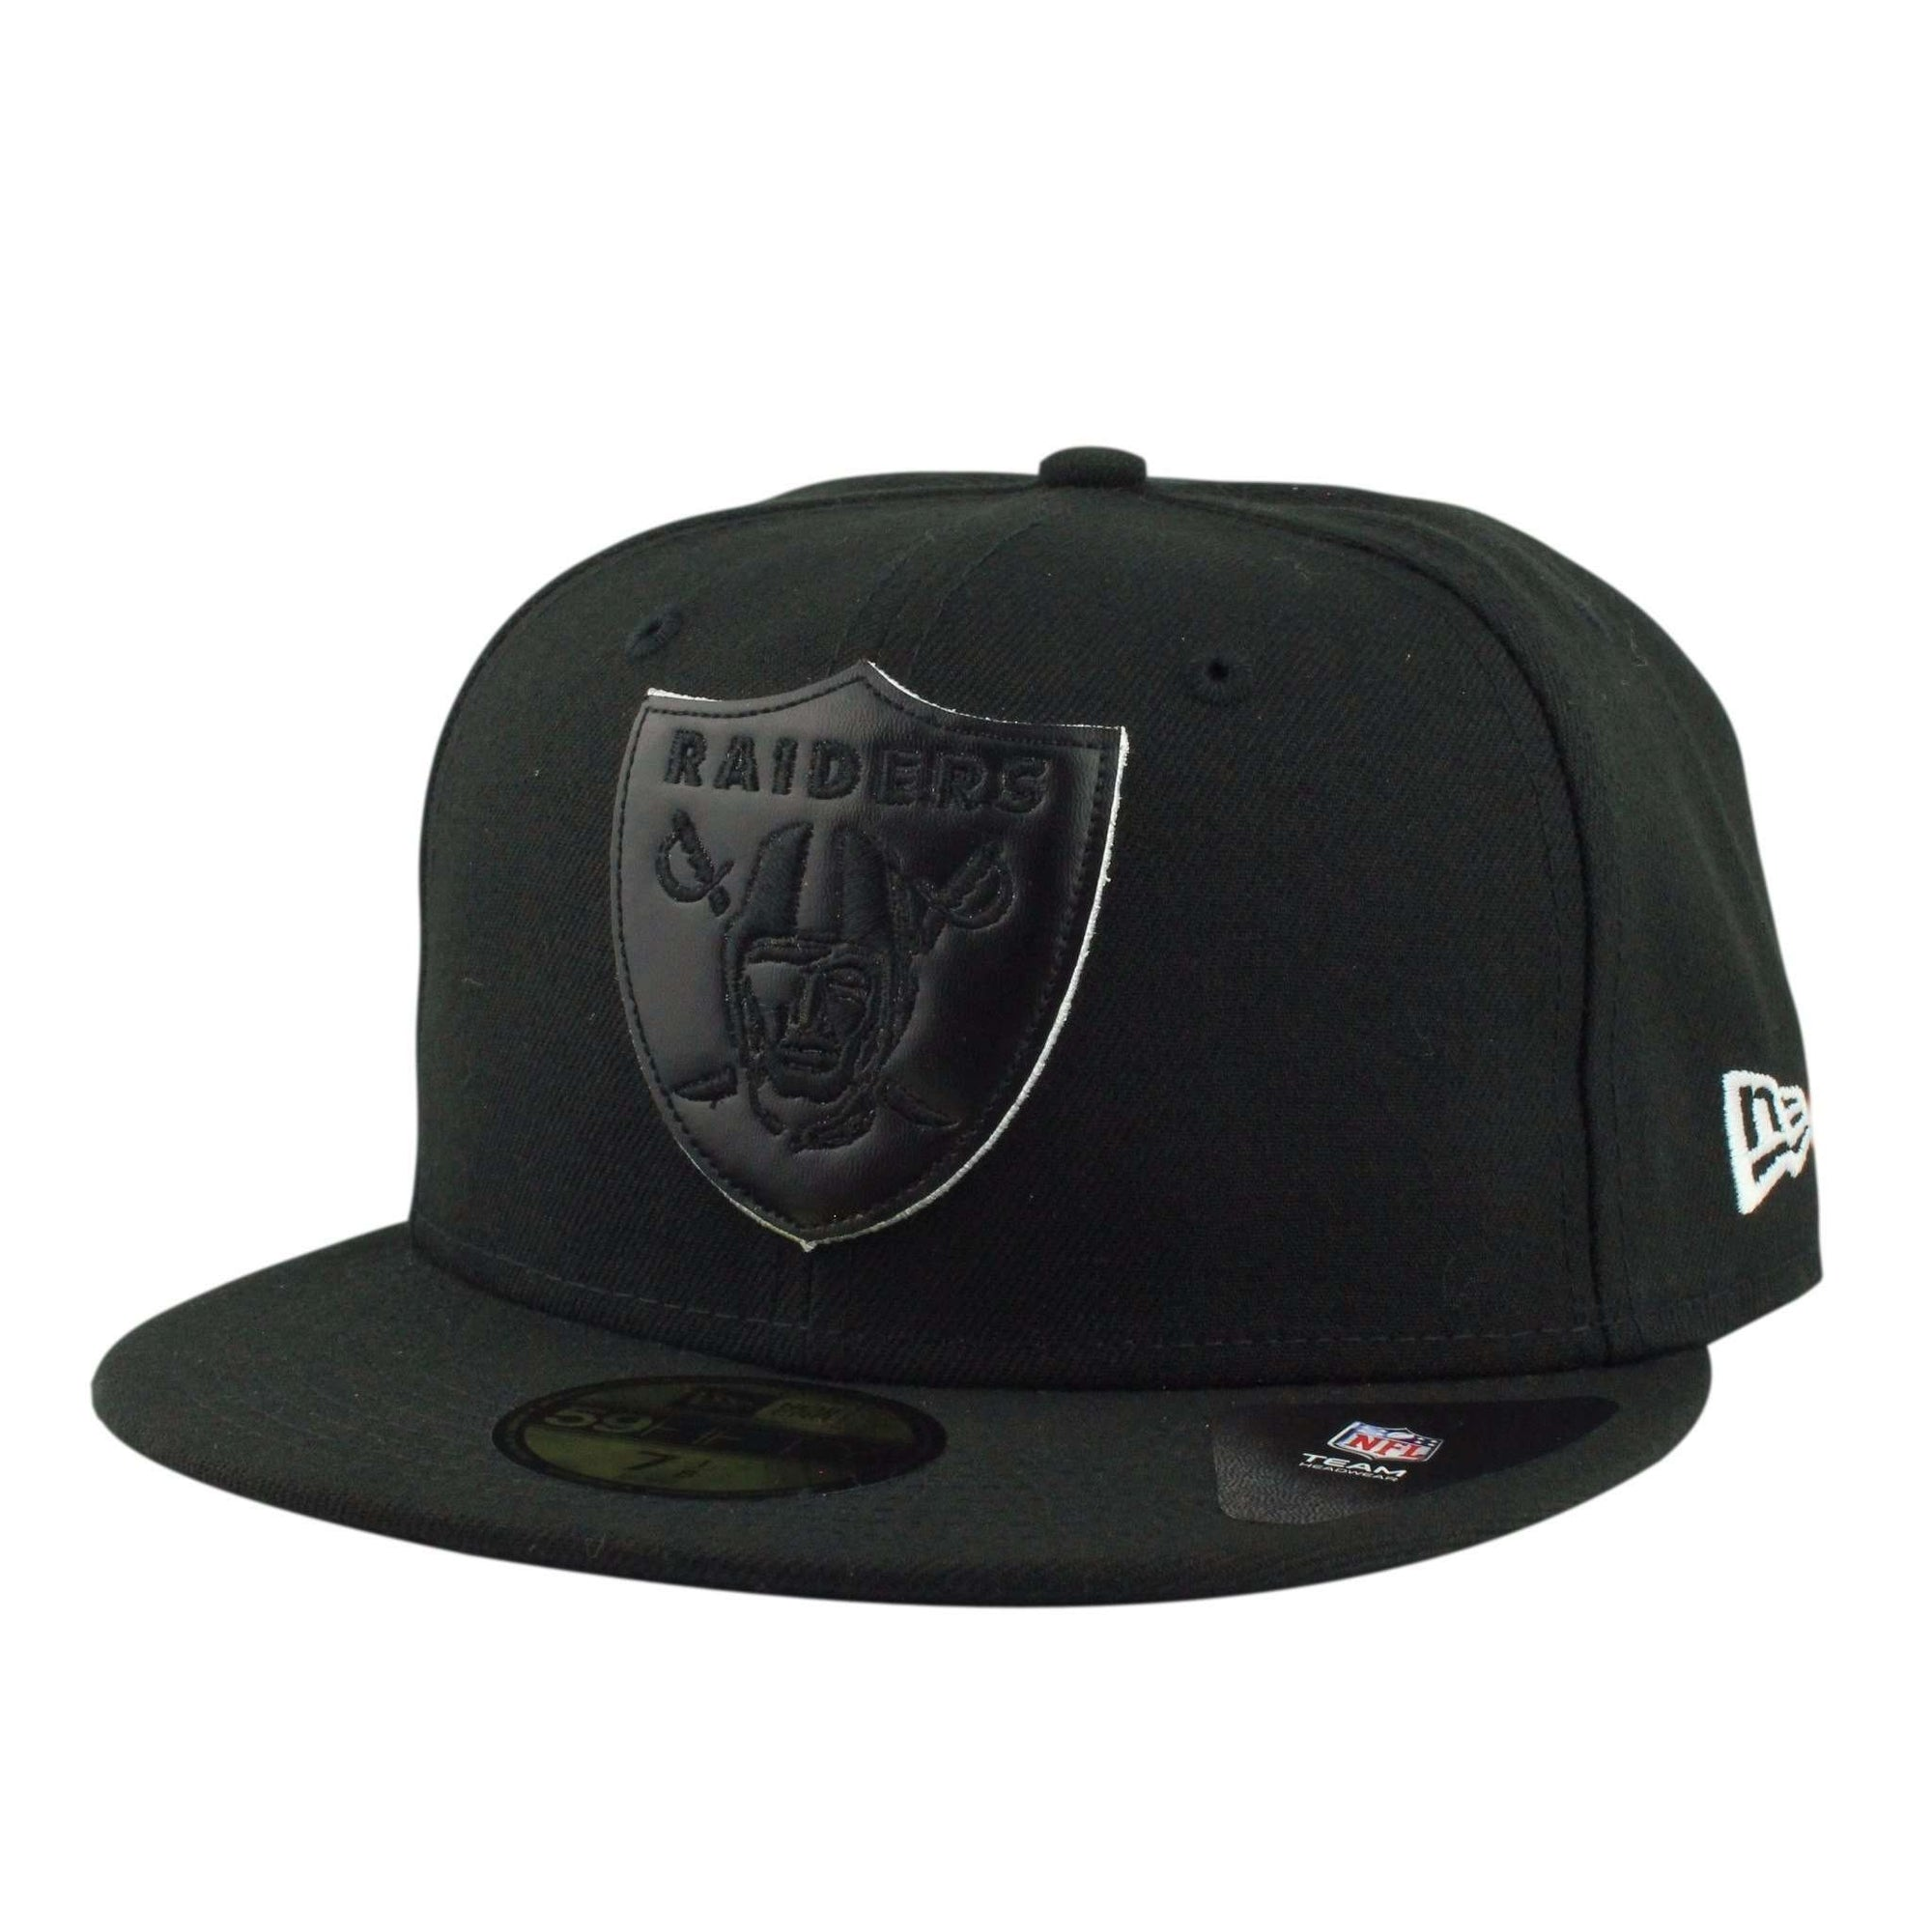 5c155960 Oakland Raiders Leather Pop Black/Black Fitted | New Era | Bespoke ...